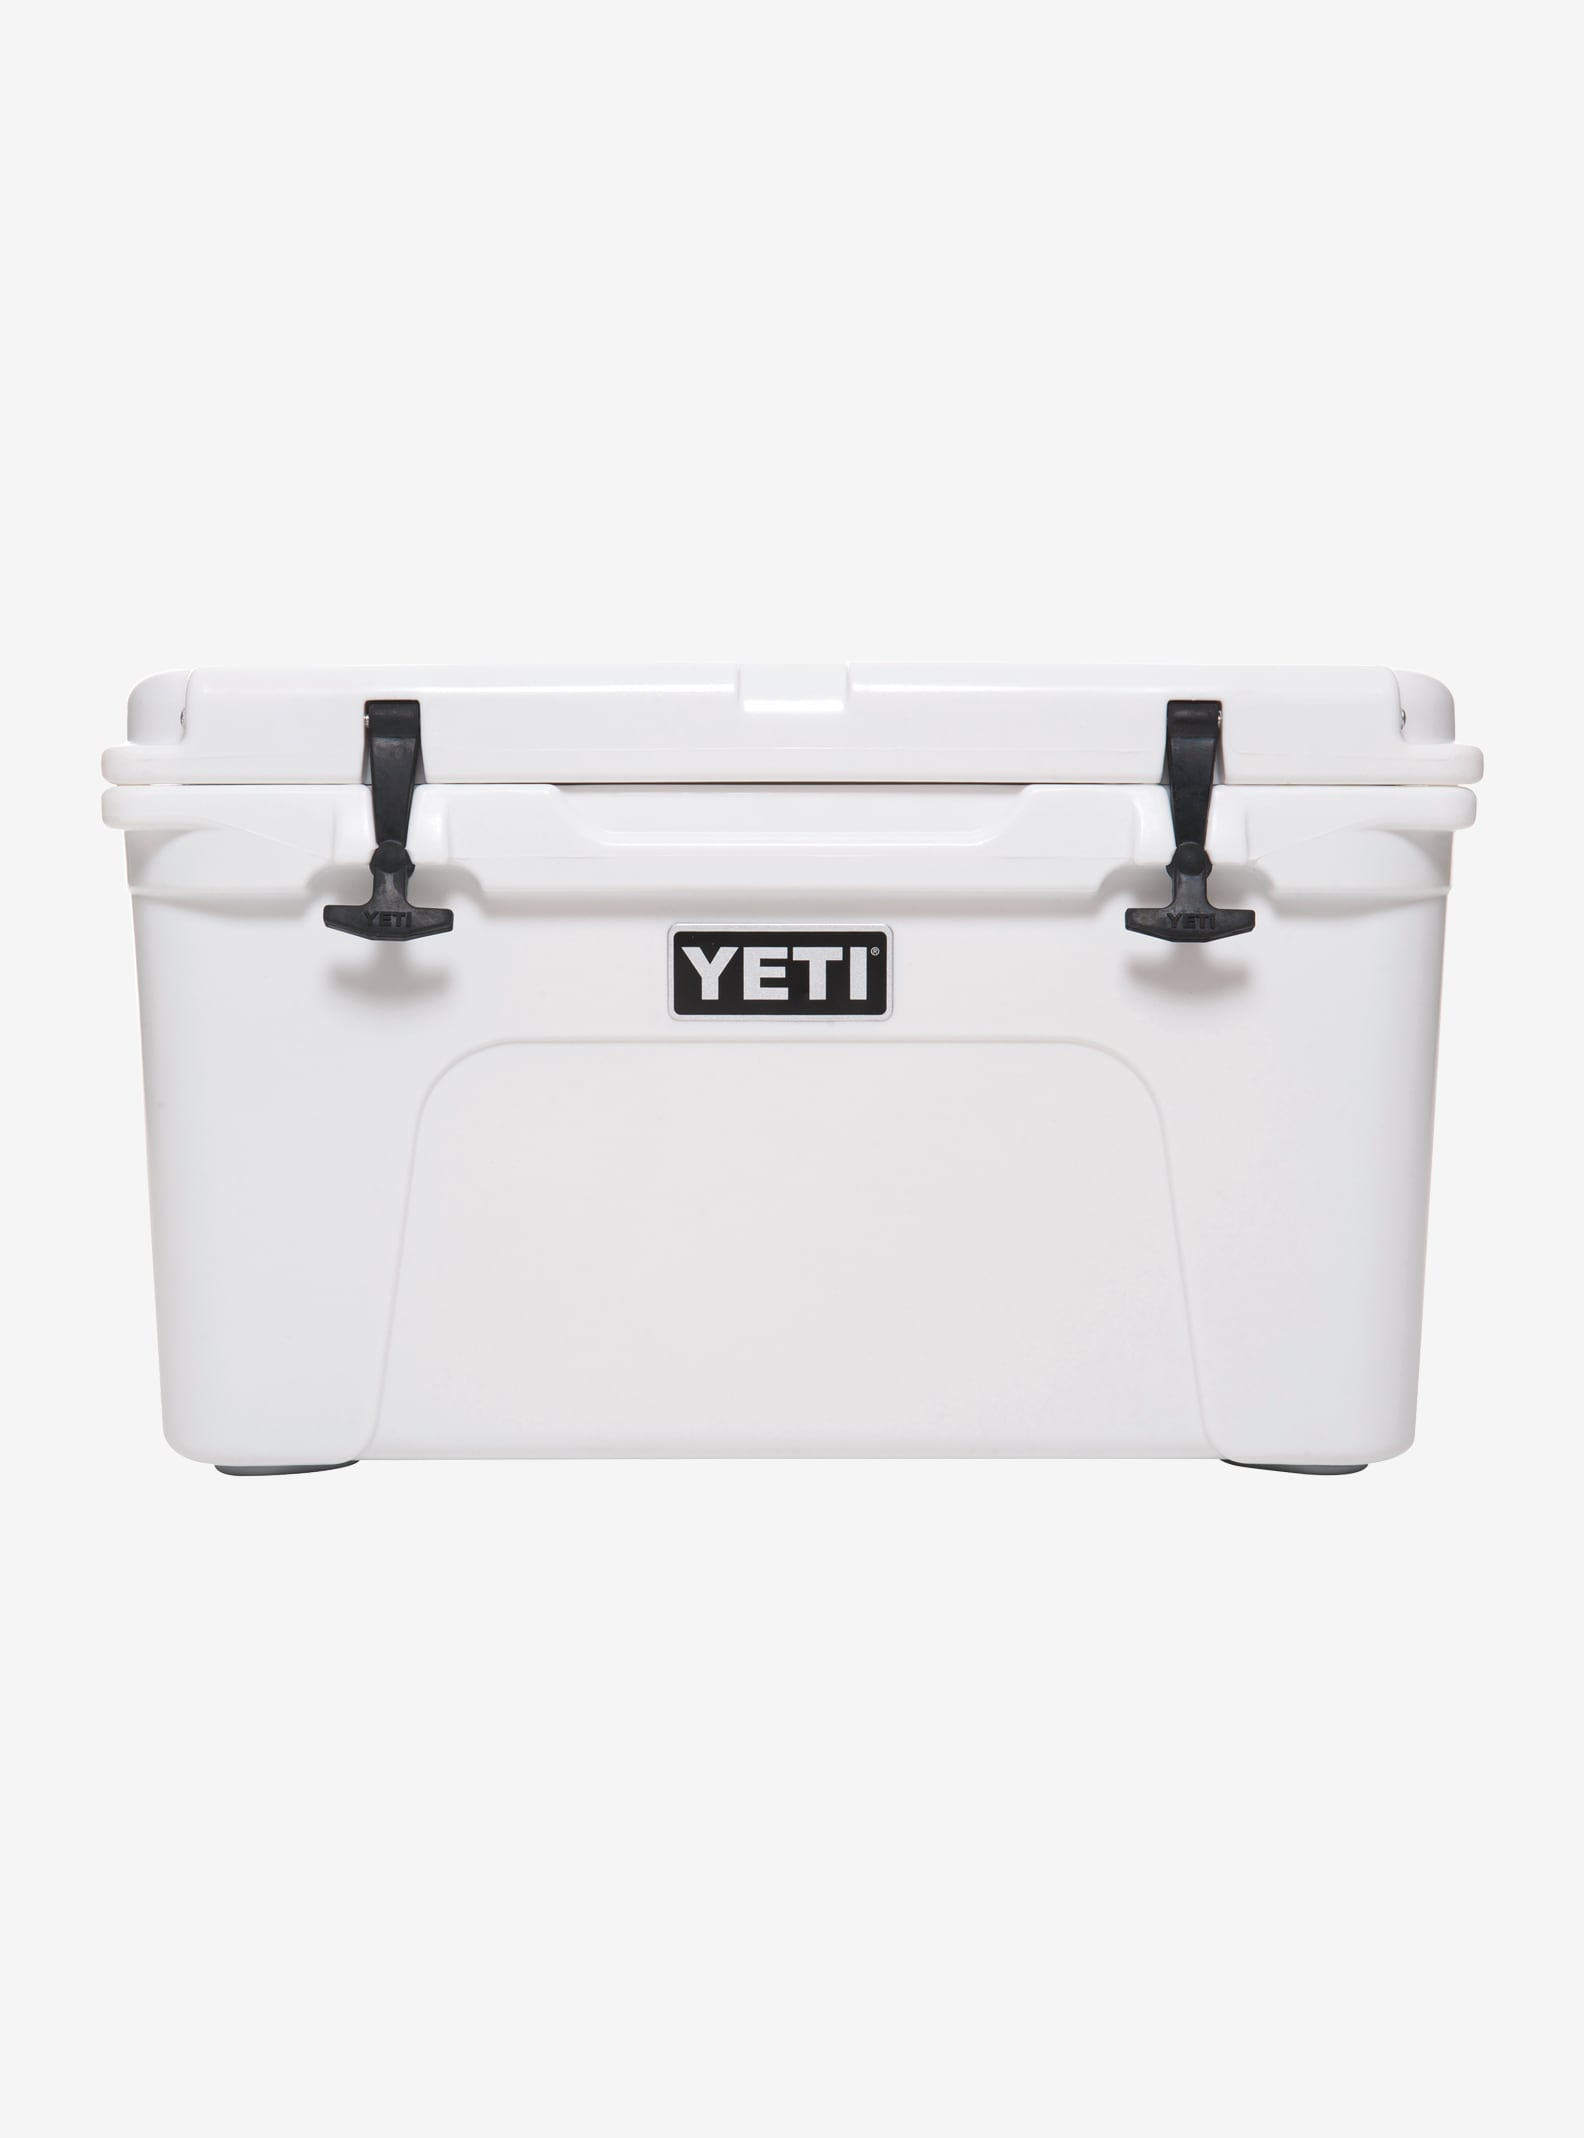 YETI Tundra 45 Cooler shown in White